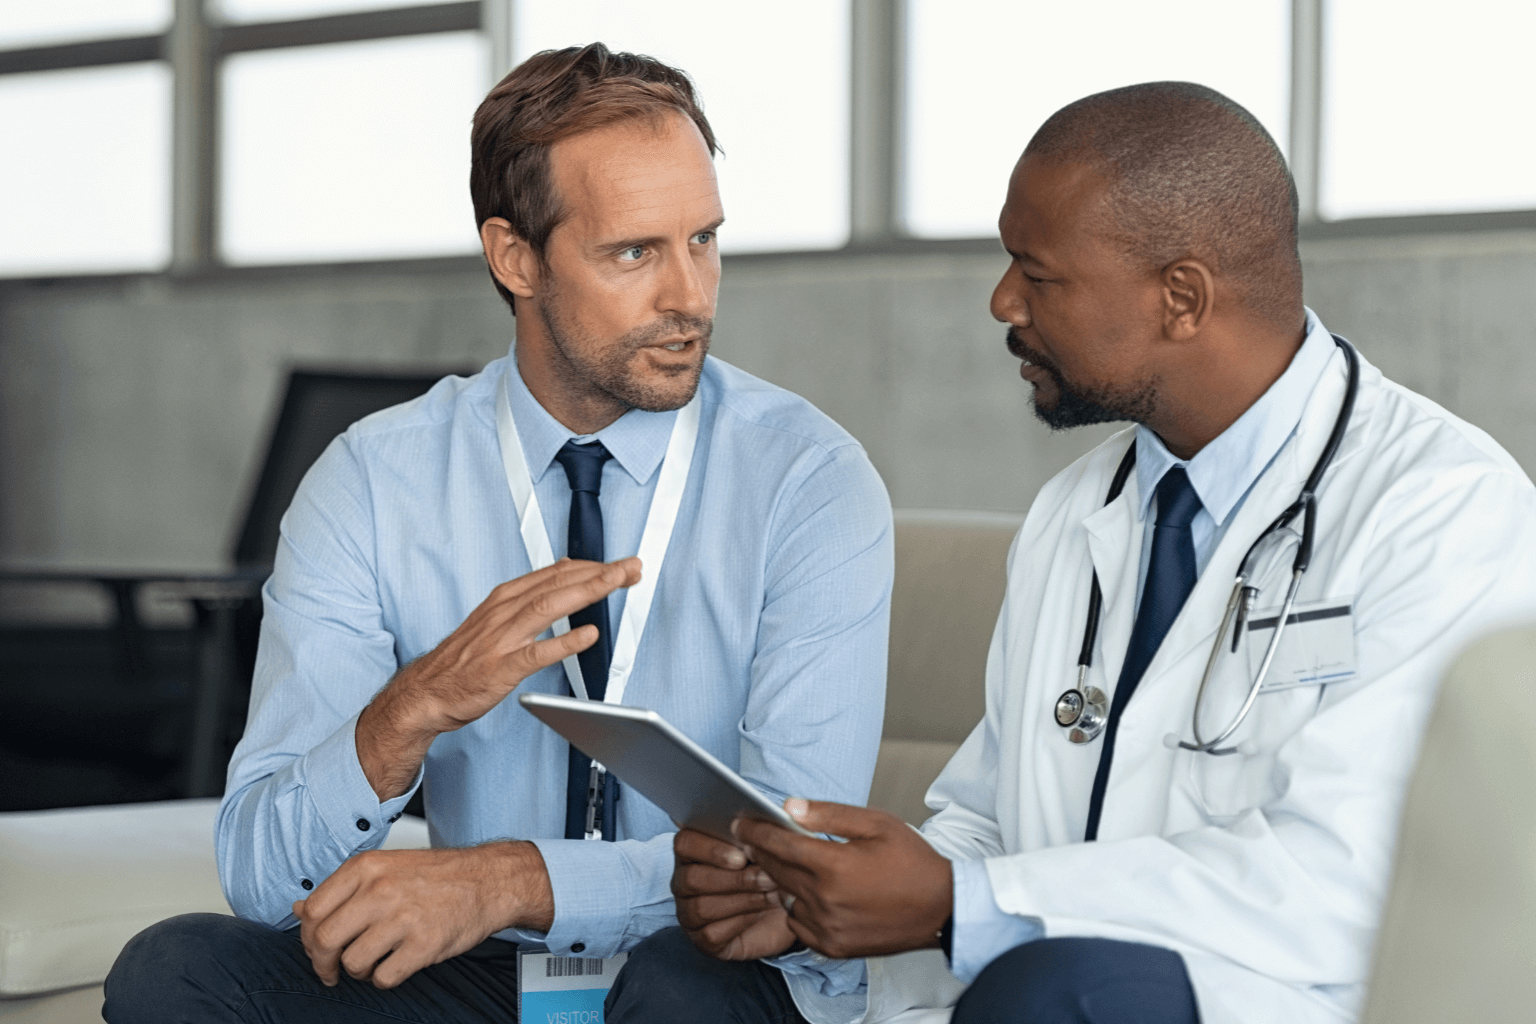 representative talking with doctor